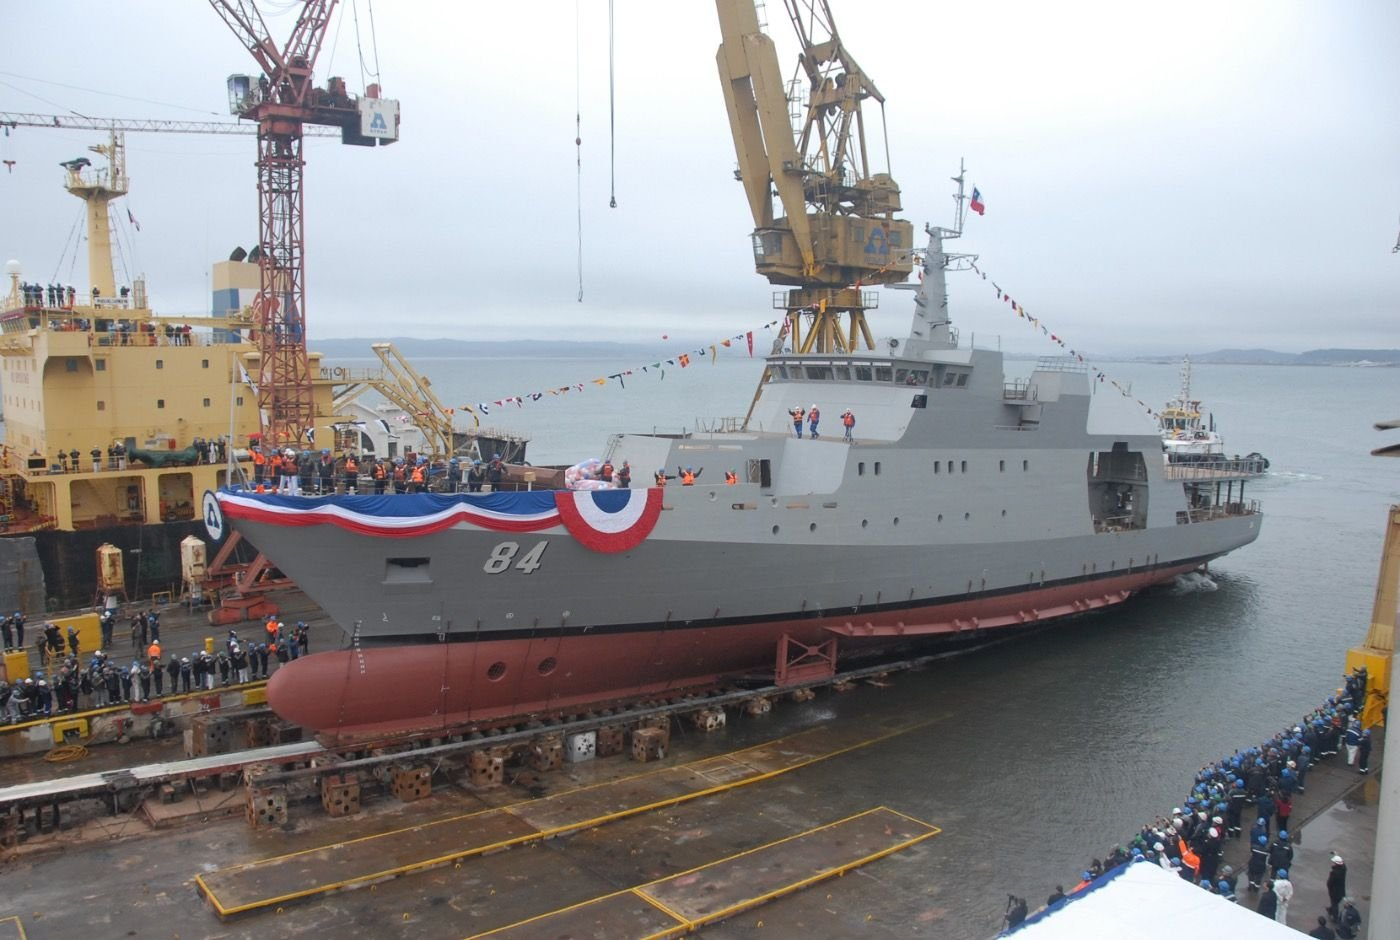 Chilean Navy Receives a Patrol Boat and Increases its Capacities